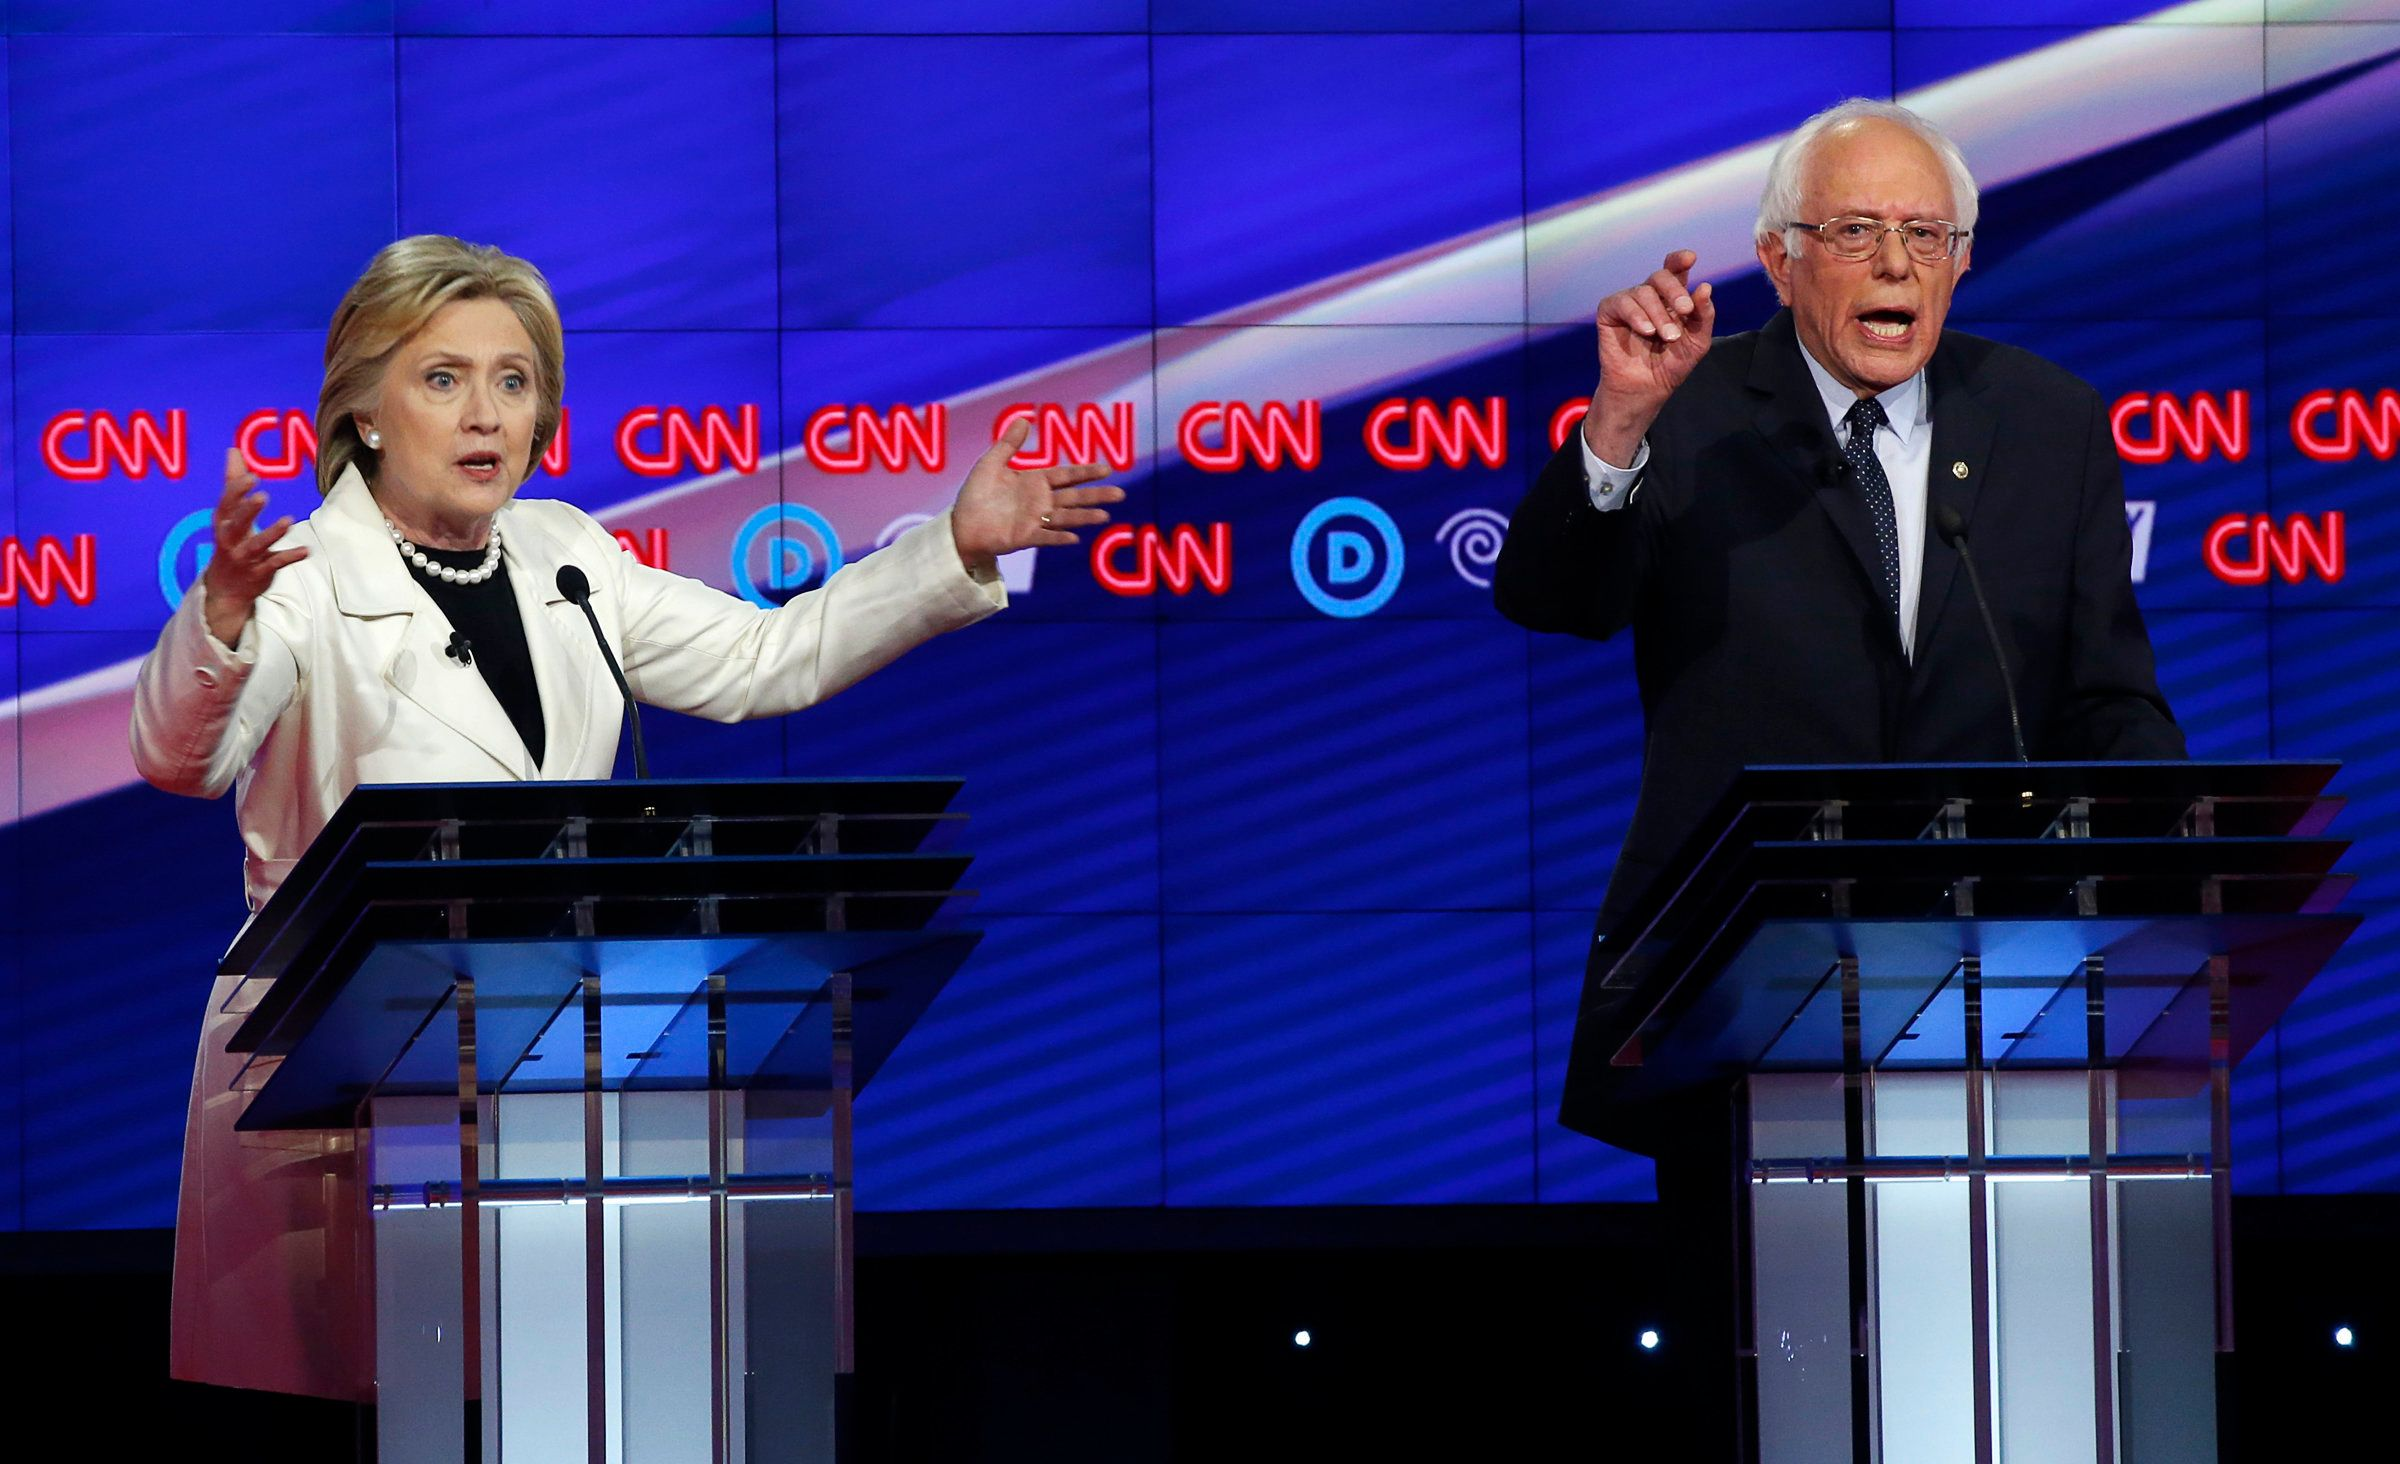 Democratic U.S. presidential candidates Hillary Clinton (L) and Senator Bernie Sanders speak simultaneously during a Democratic debate hosted by CNN and New York One at the Brooklyn Navy Yard in New York April 14, 2016.   REUTERS/Lucas Jackson